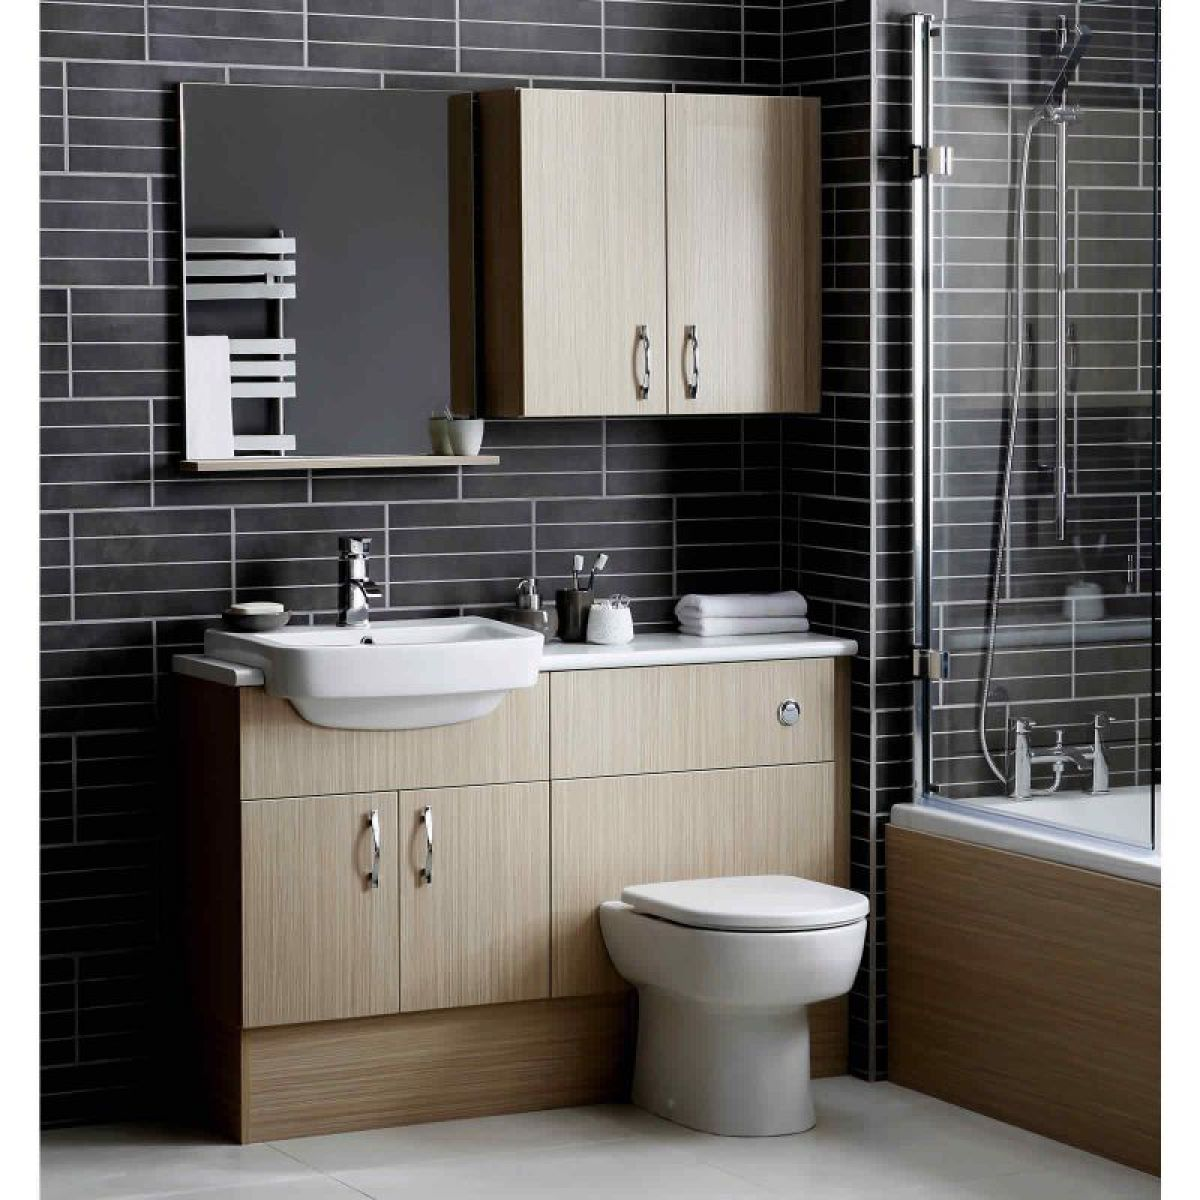 Wonderful The Symmetry Range Can Be Used To Create An Ultramodern Bathroom Or, Finished In Traditional Colours, A Period Look Fitted Furniture Reaches All The Way Down To The Floor And Includes Plinths Which Are Ideal For Concealing Unsightly